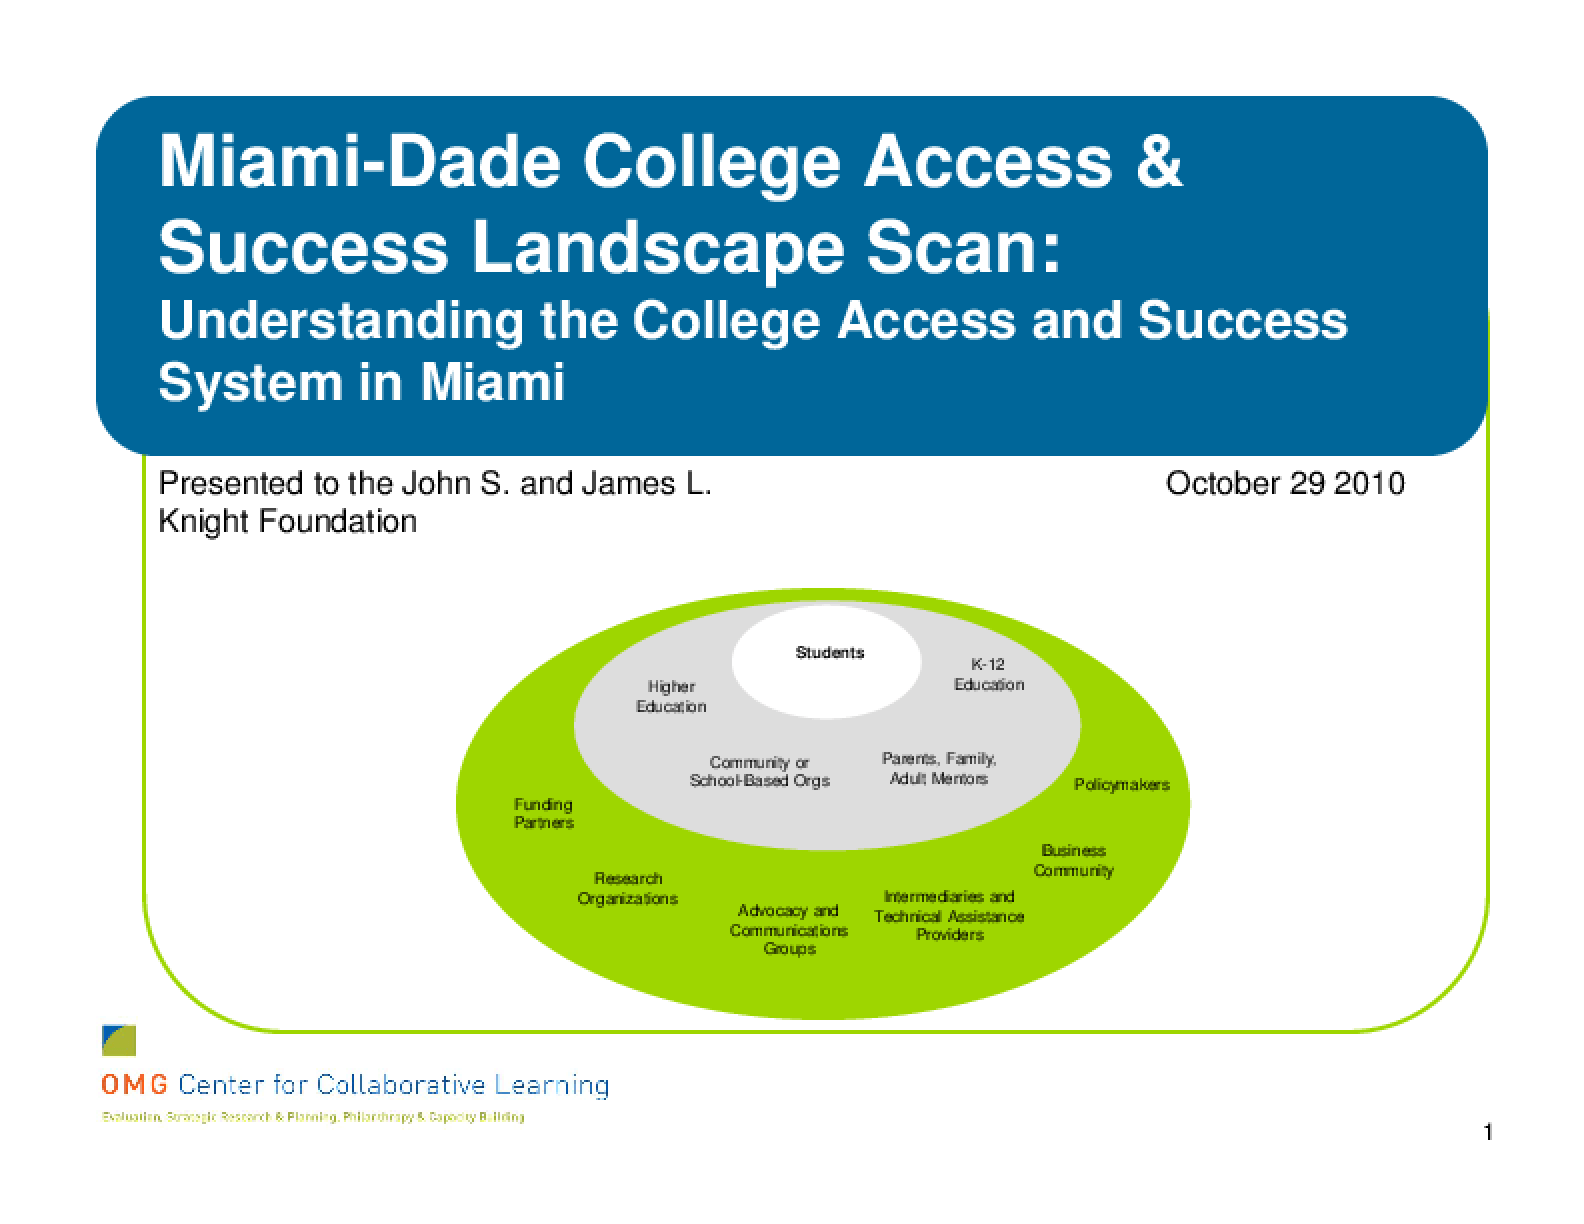 Miami-Dade College Access & Success Landscape Scan: Understanding the College Access and Success System in Miami